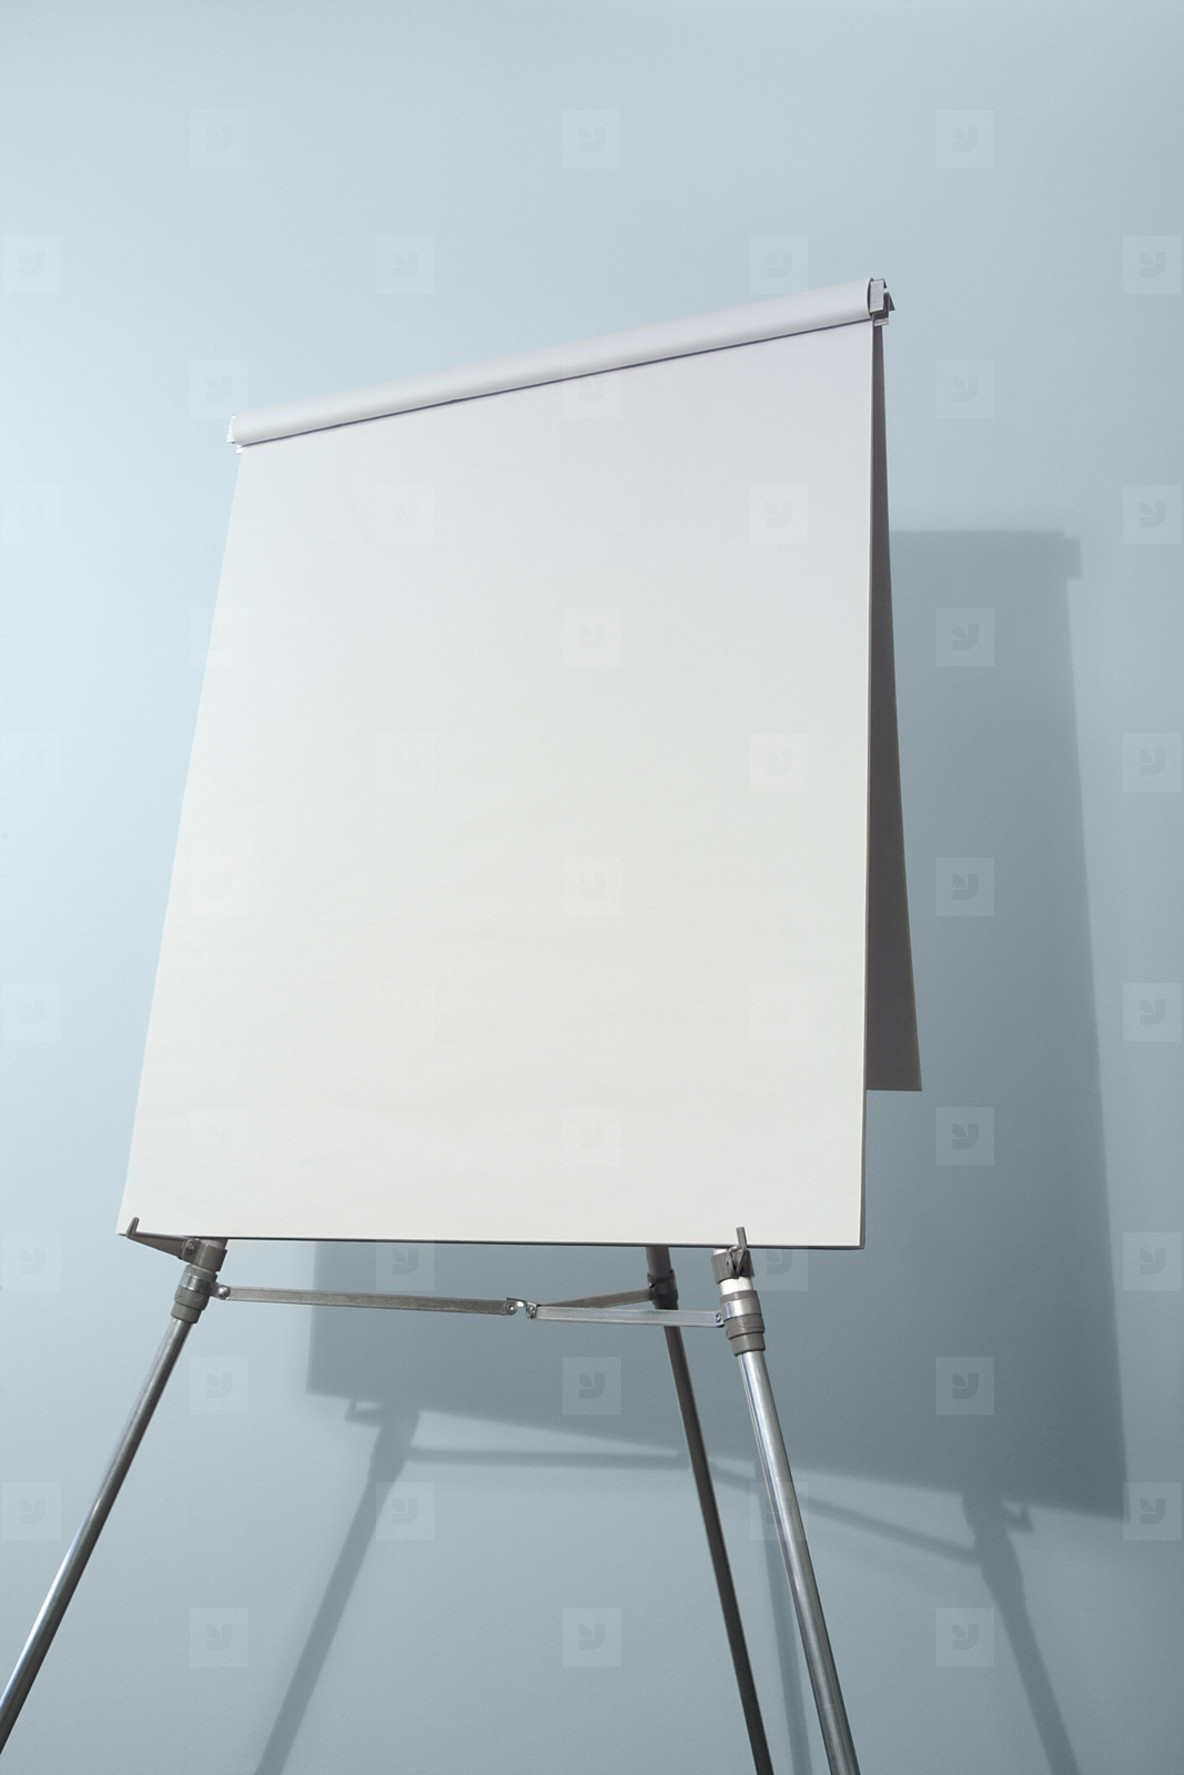 Large writing tablet